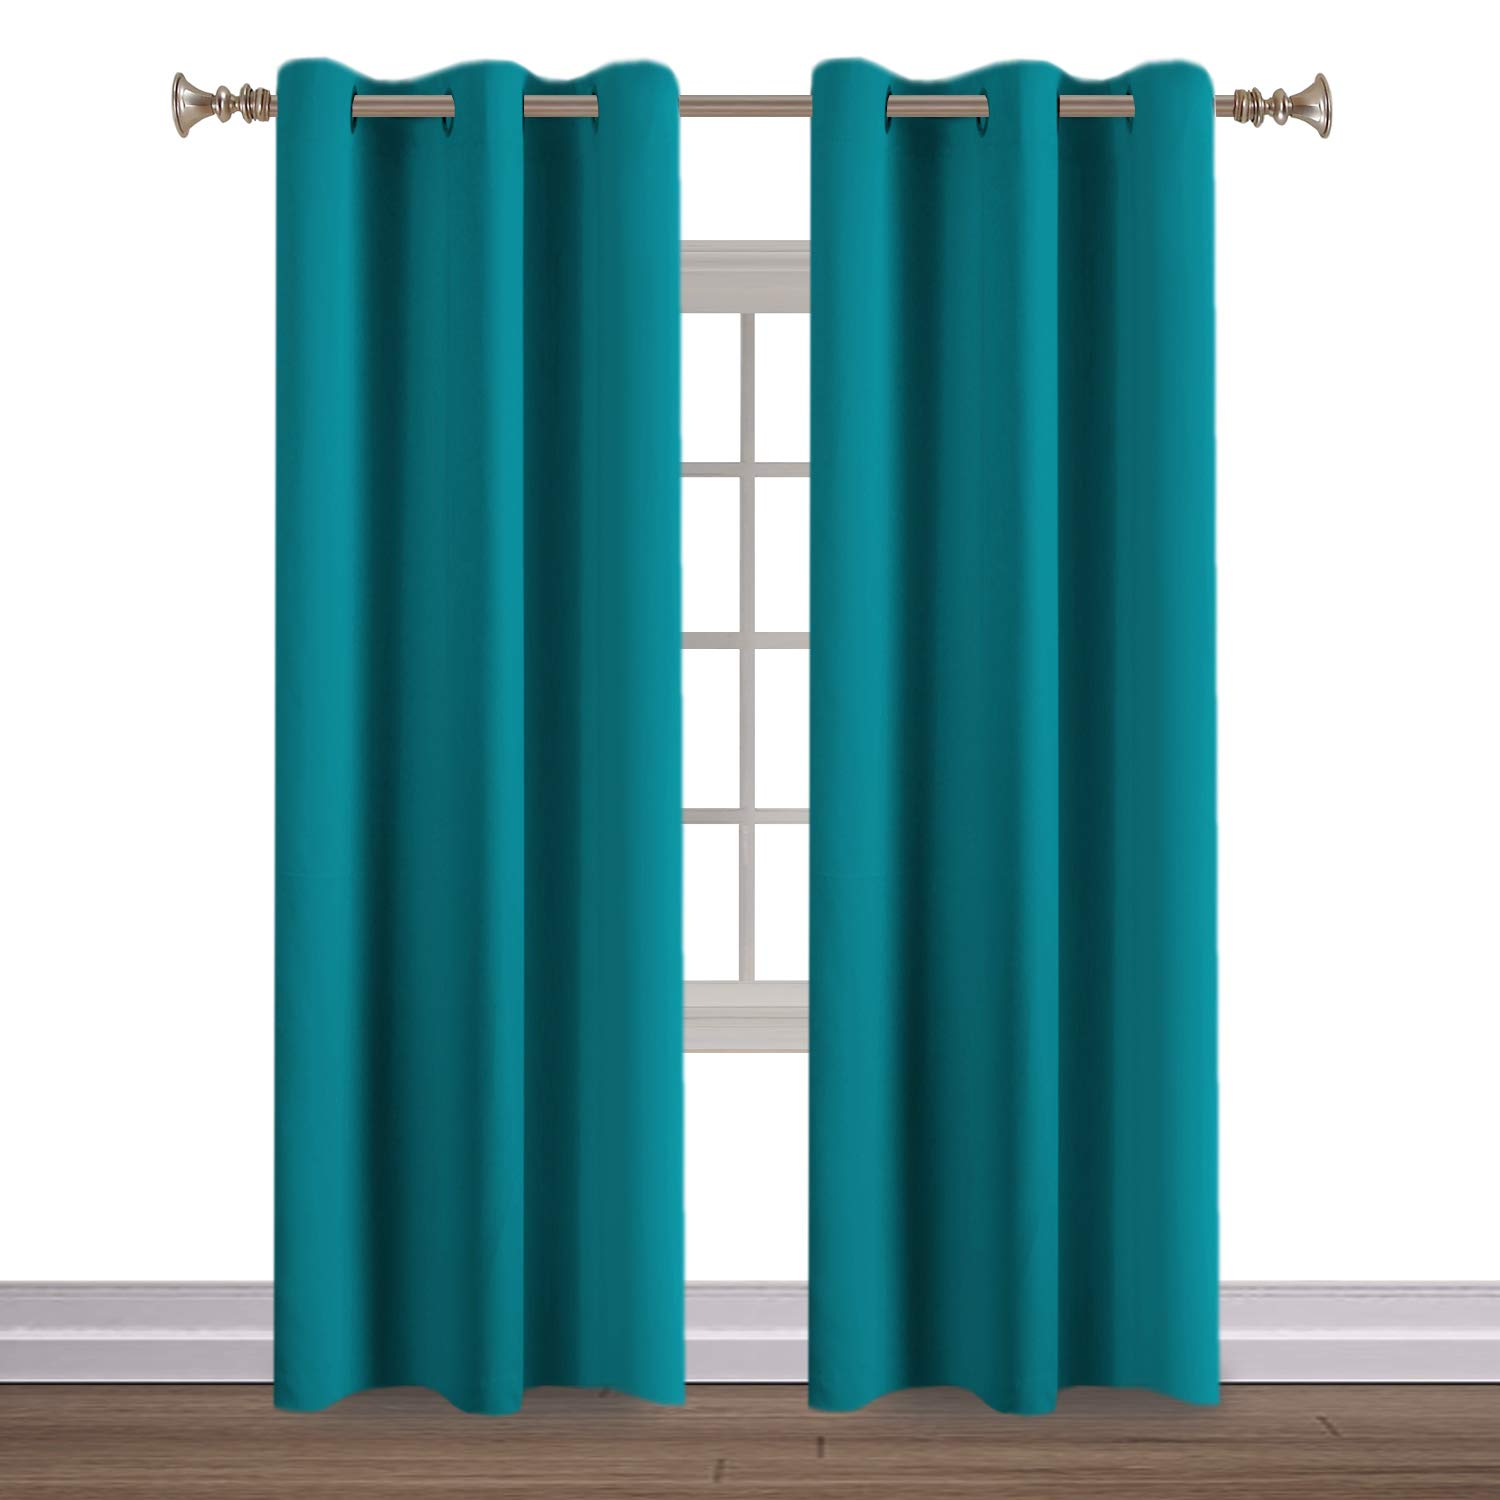 Turquoize Teal Blackout Curtains Themal Insulated Grommet/Eyelet Top Window Treatment Nursery & Infant Care Panels Drapes, Each Panel 42'' W x 84'' L